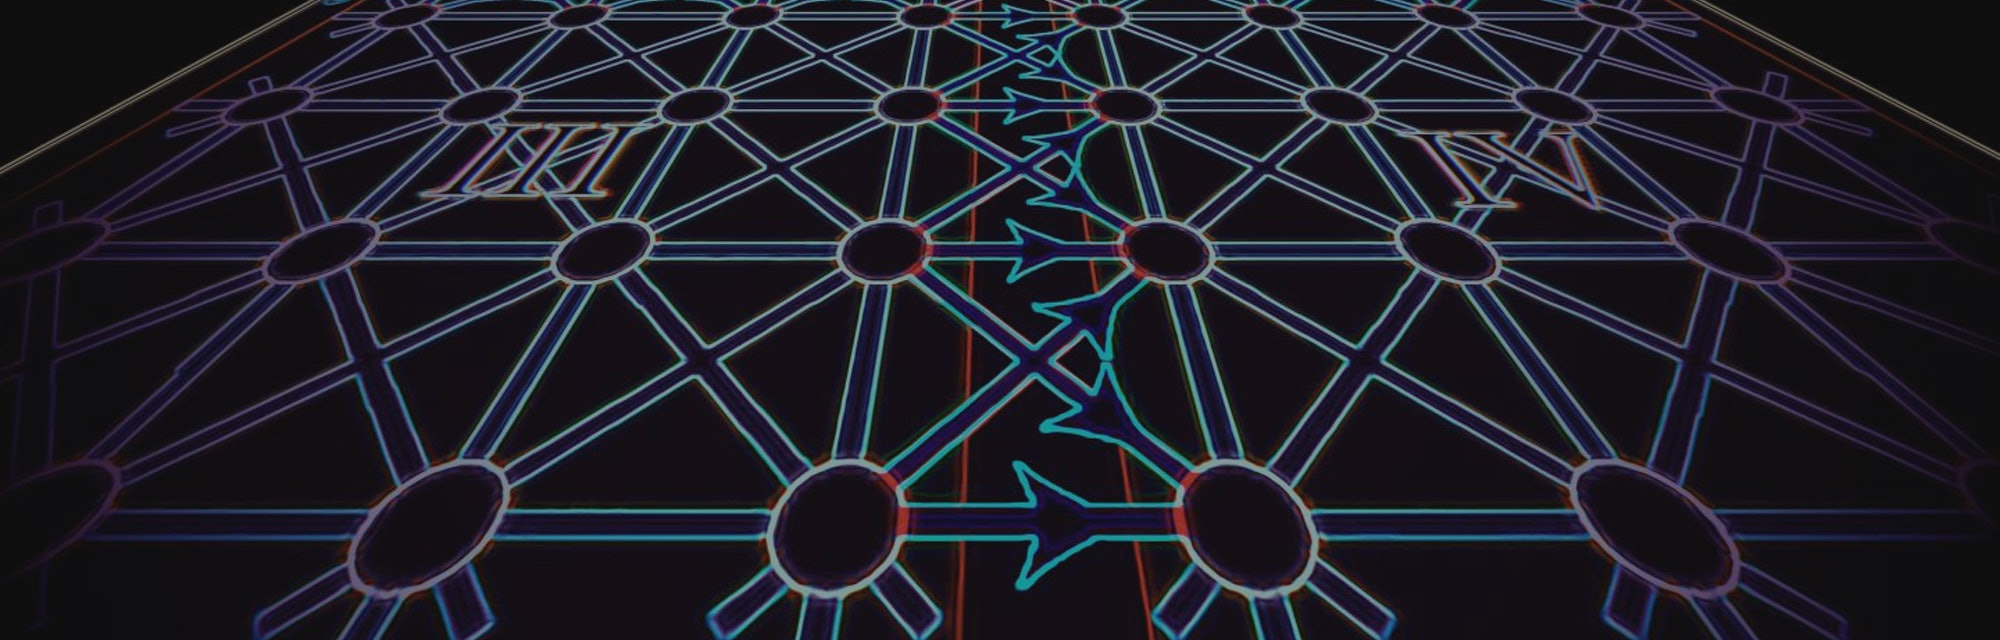 Topological insulators reveal a more mysterious, fragile side